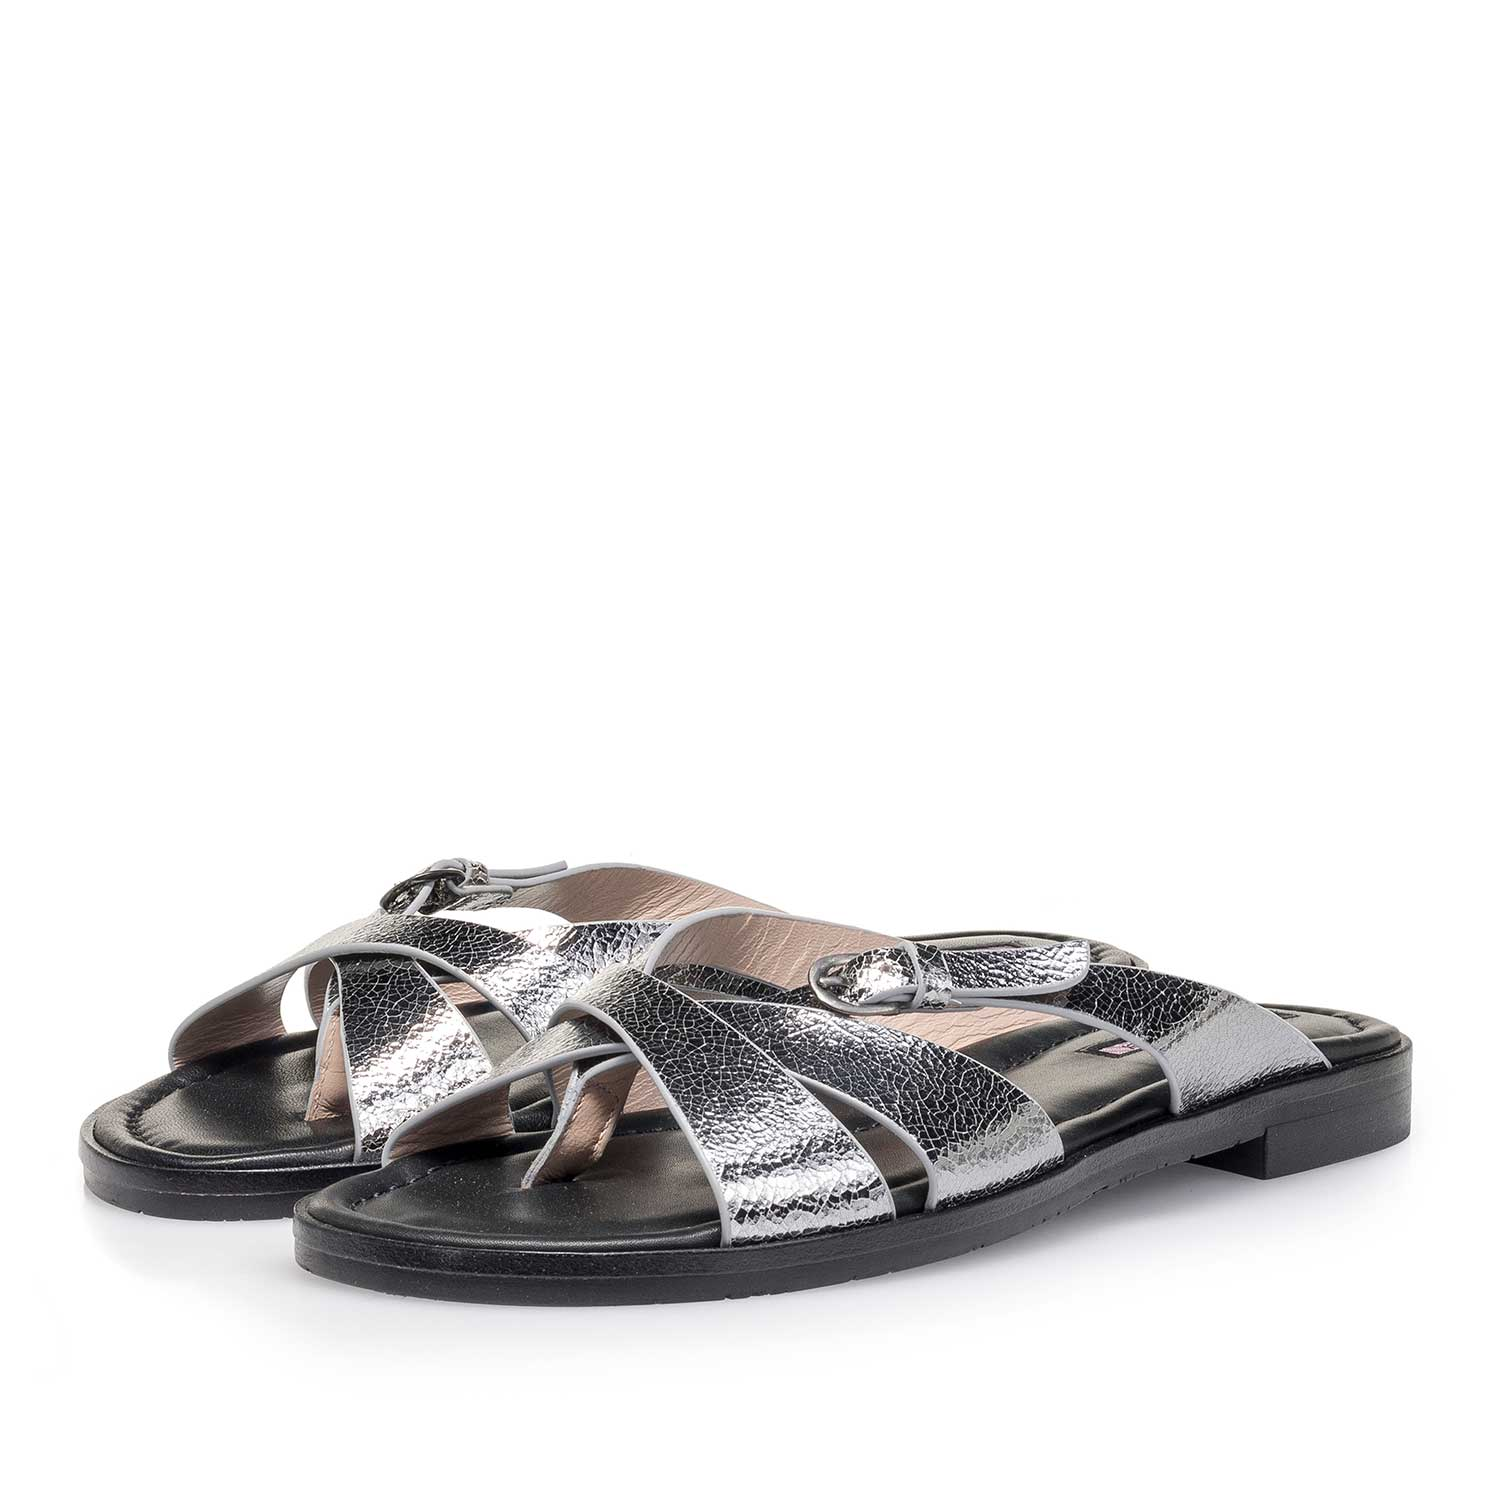 85911/06 - Silver metallic leather slipper with craquelé effect